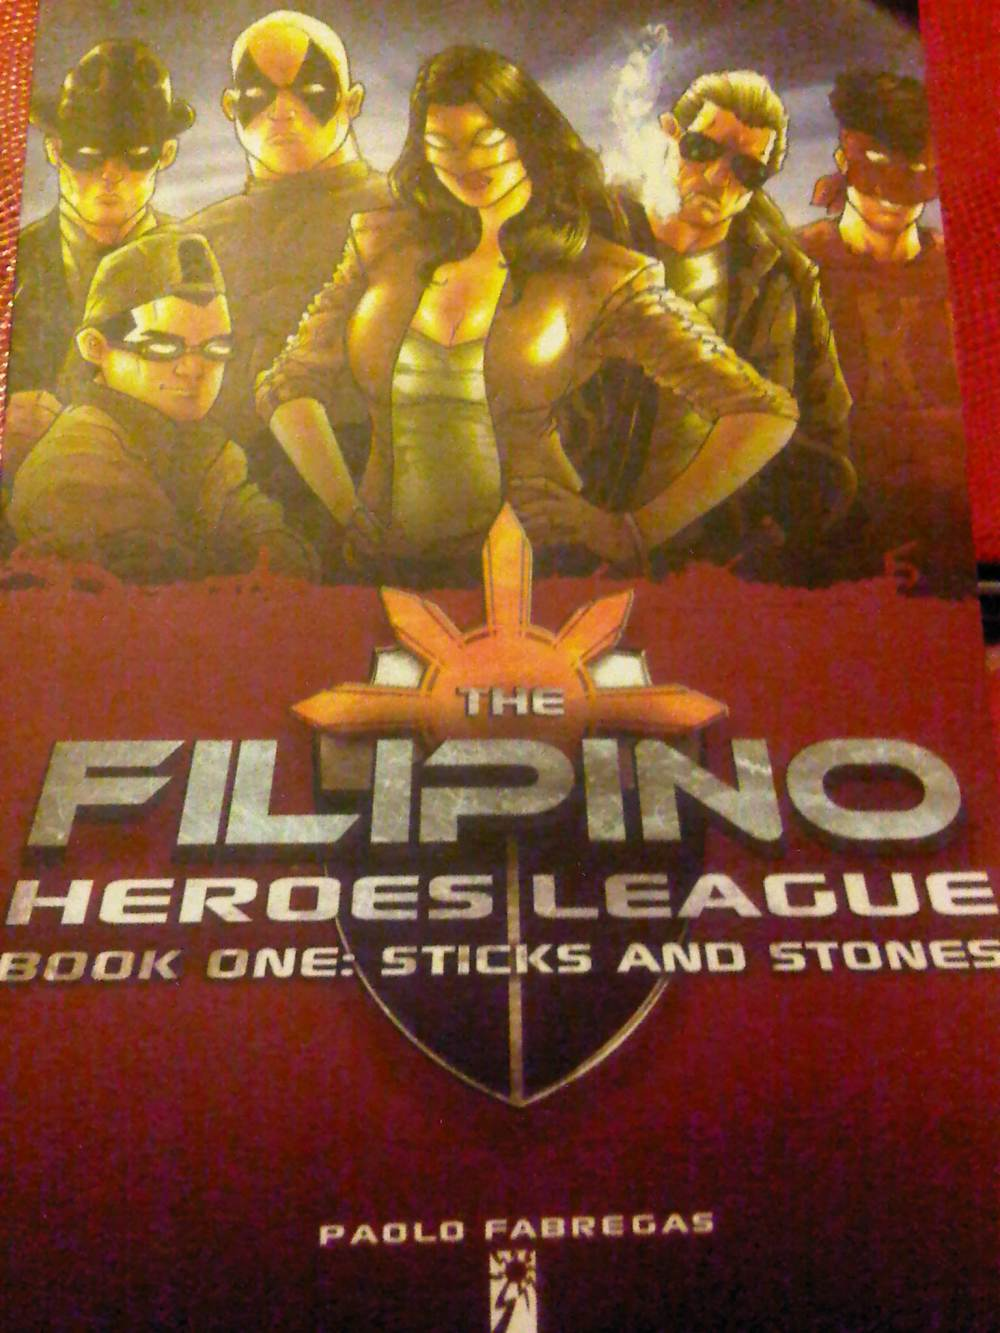 The Filipino Heroes League by Paolo Fabregas